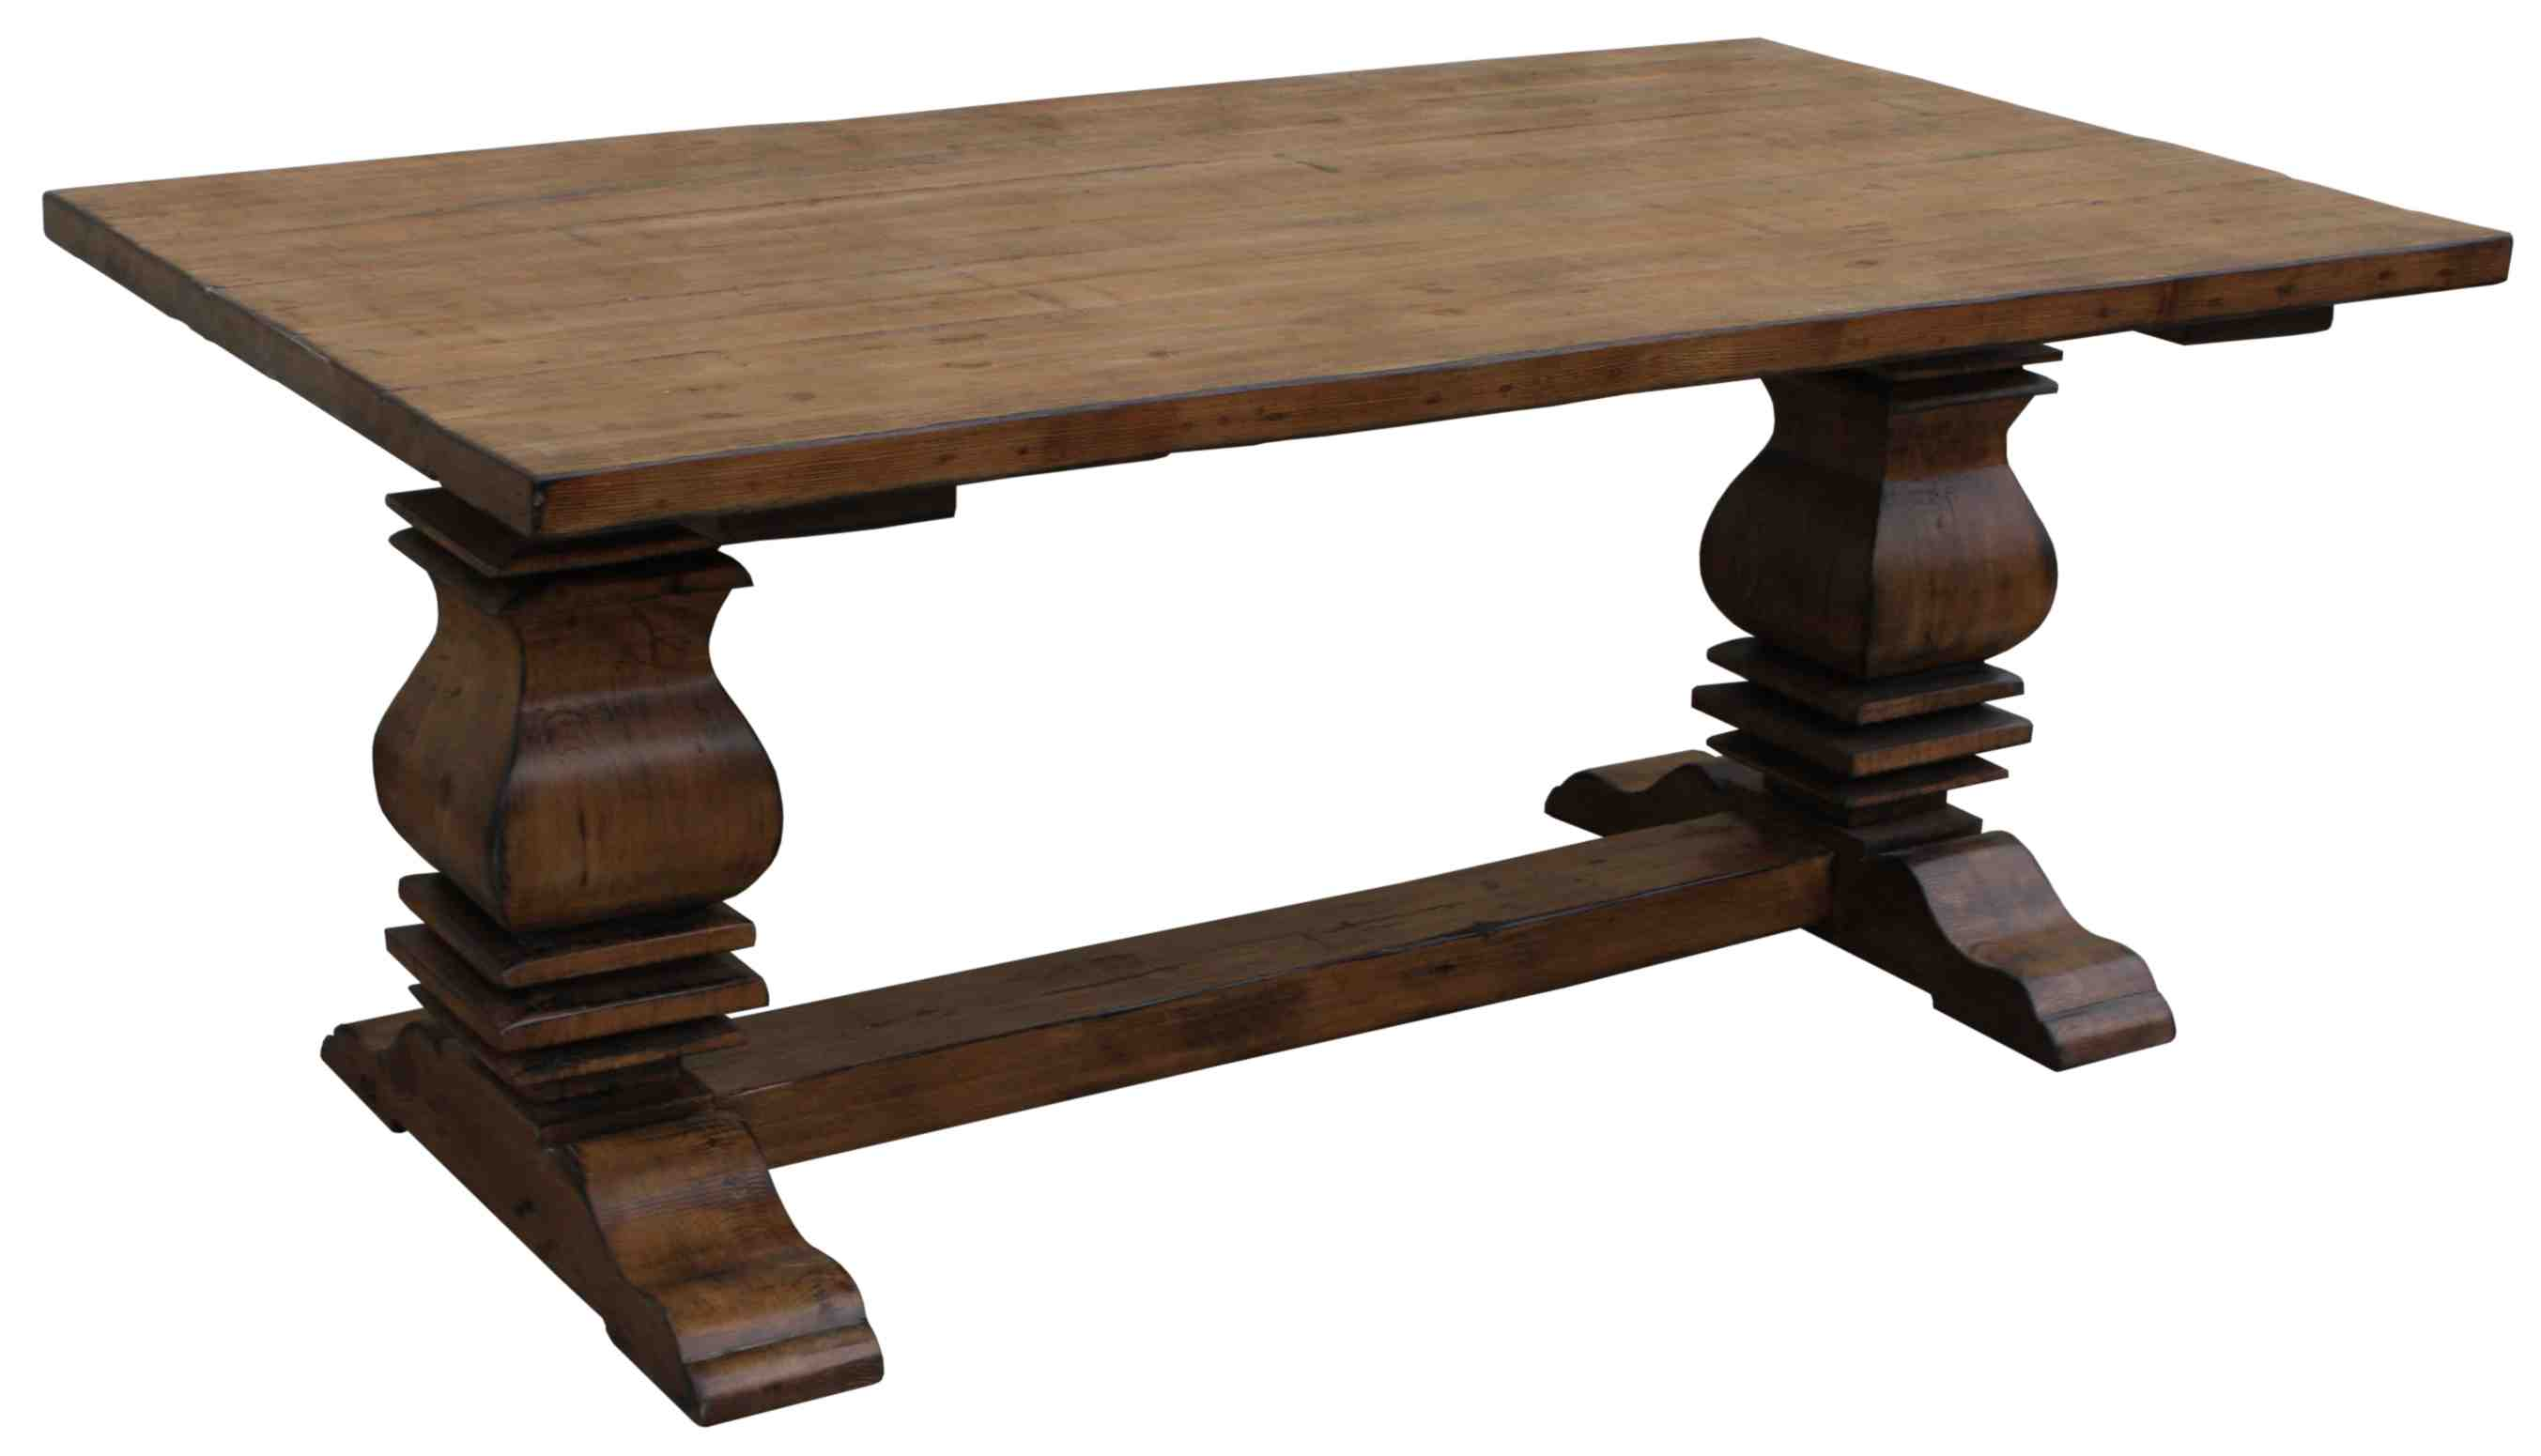 2706x1551px 8 Nice Salvaged Wood Dining Tables Picture in Furniture